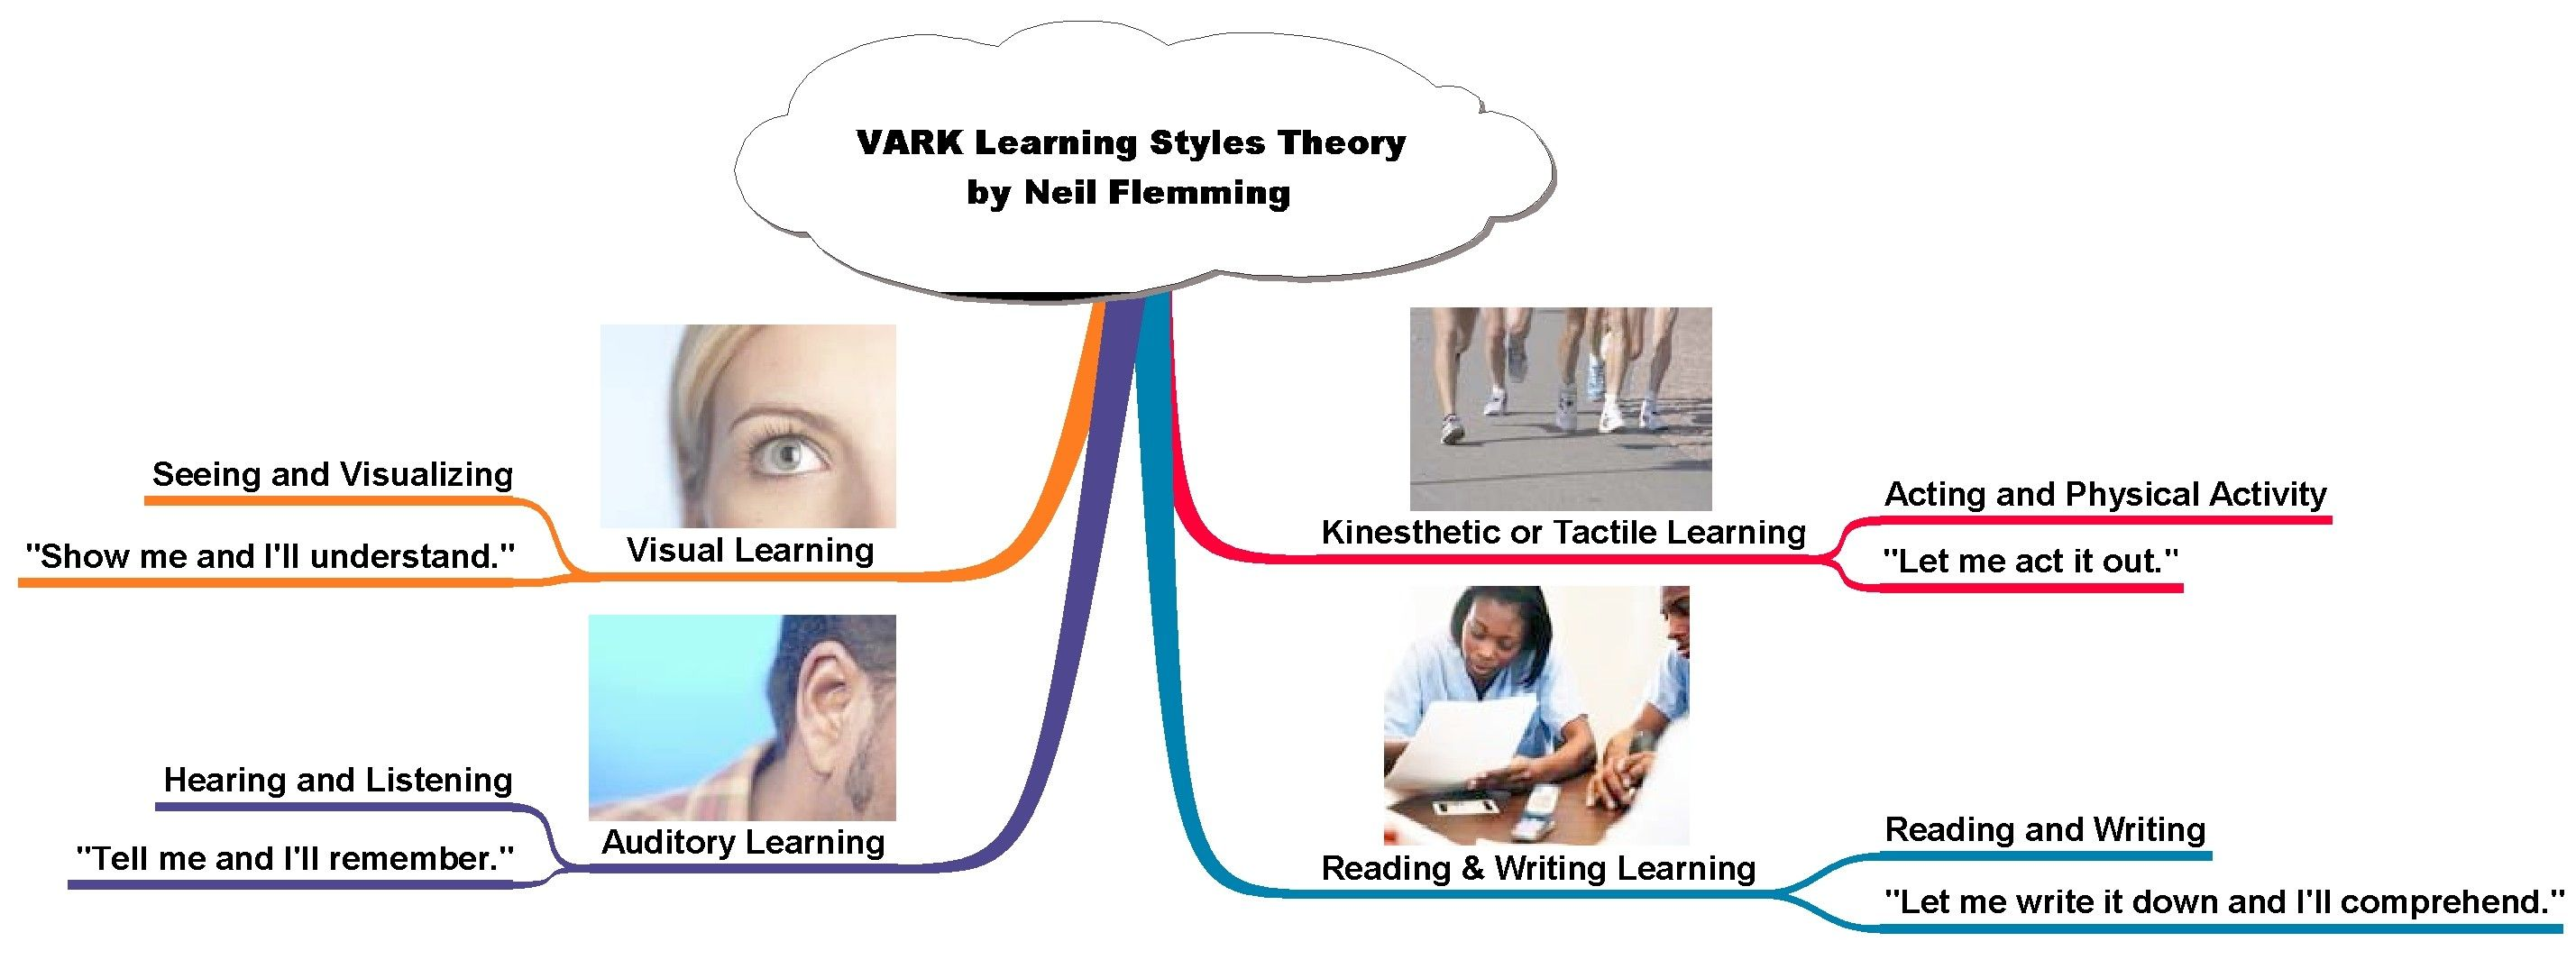 vark learning styles Learn through listening vark learning styles: visual, auditory, read/write, kinesthetic there are many models and theories about learning styles.